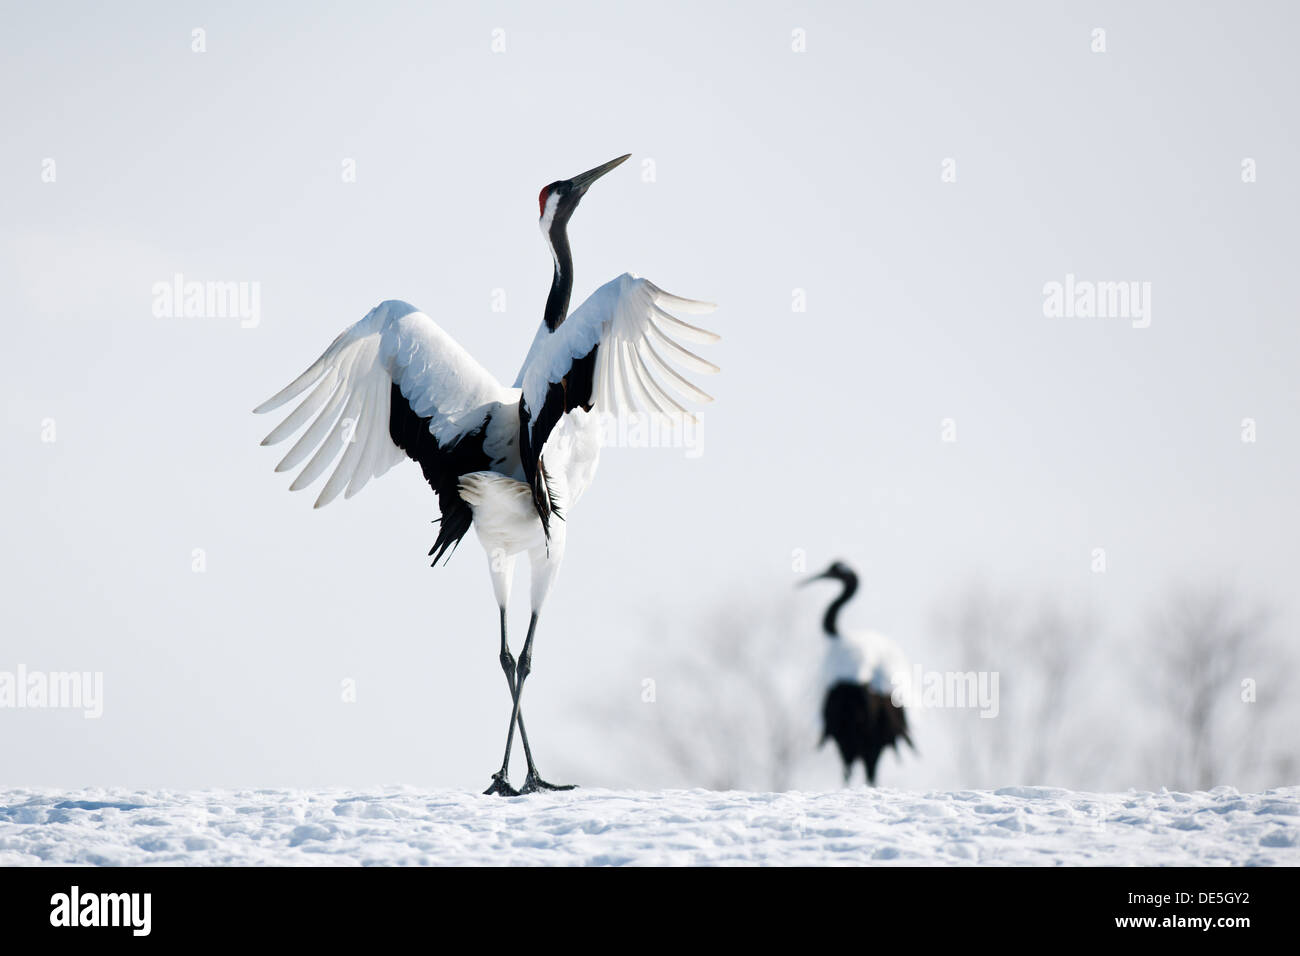 Japanese cranes at courtship. - Stock Image